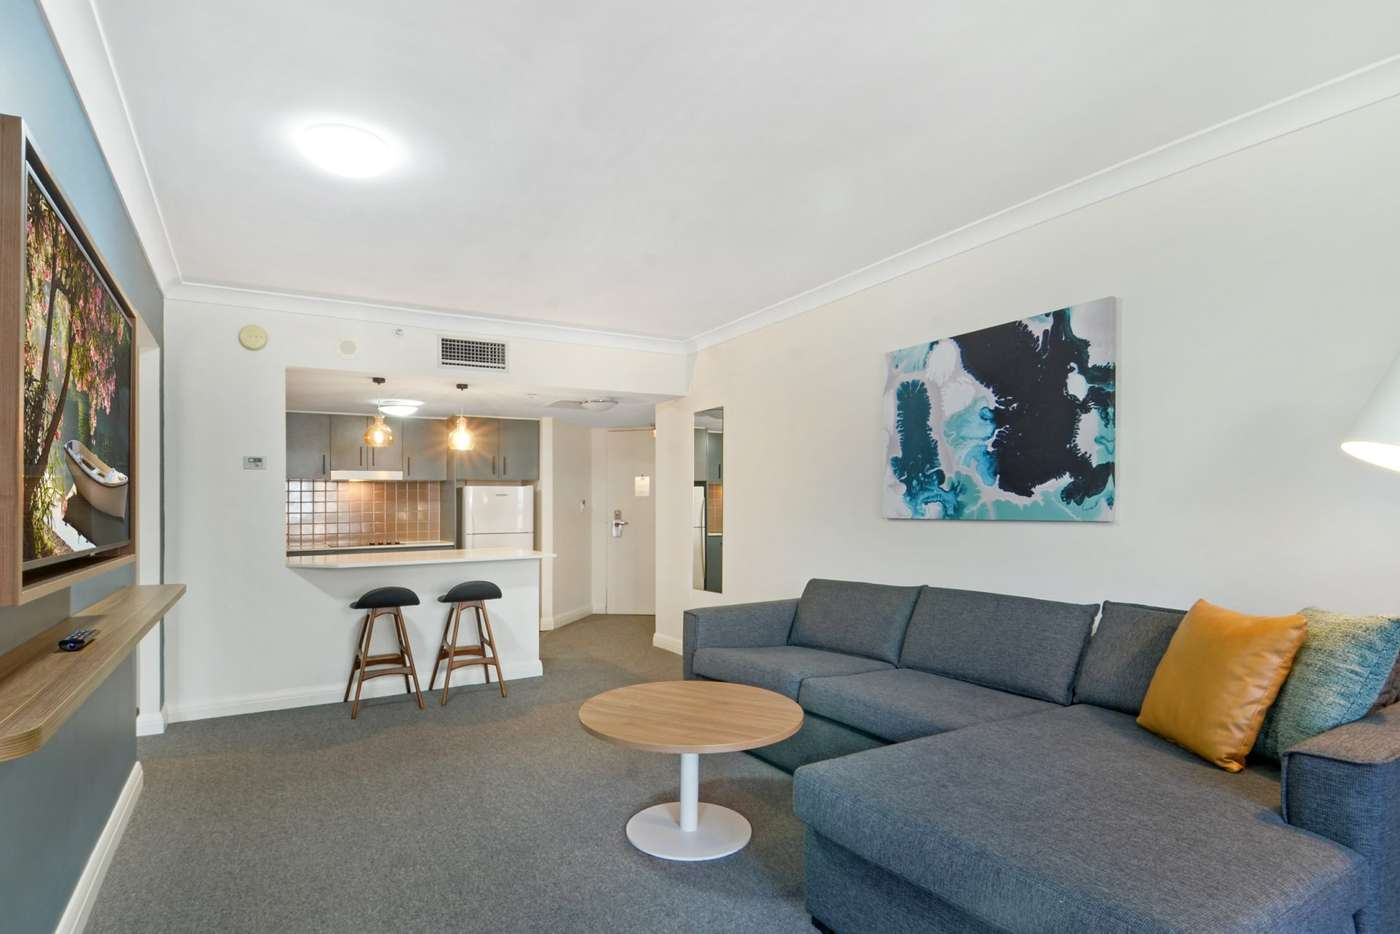 Main view of Homely apartment listing, 802/10 Brown Street, Chatswood NSW 2067